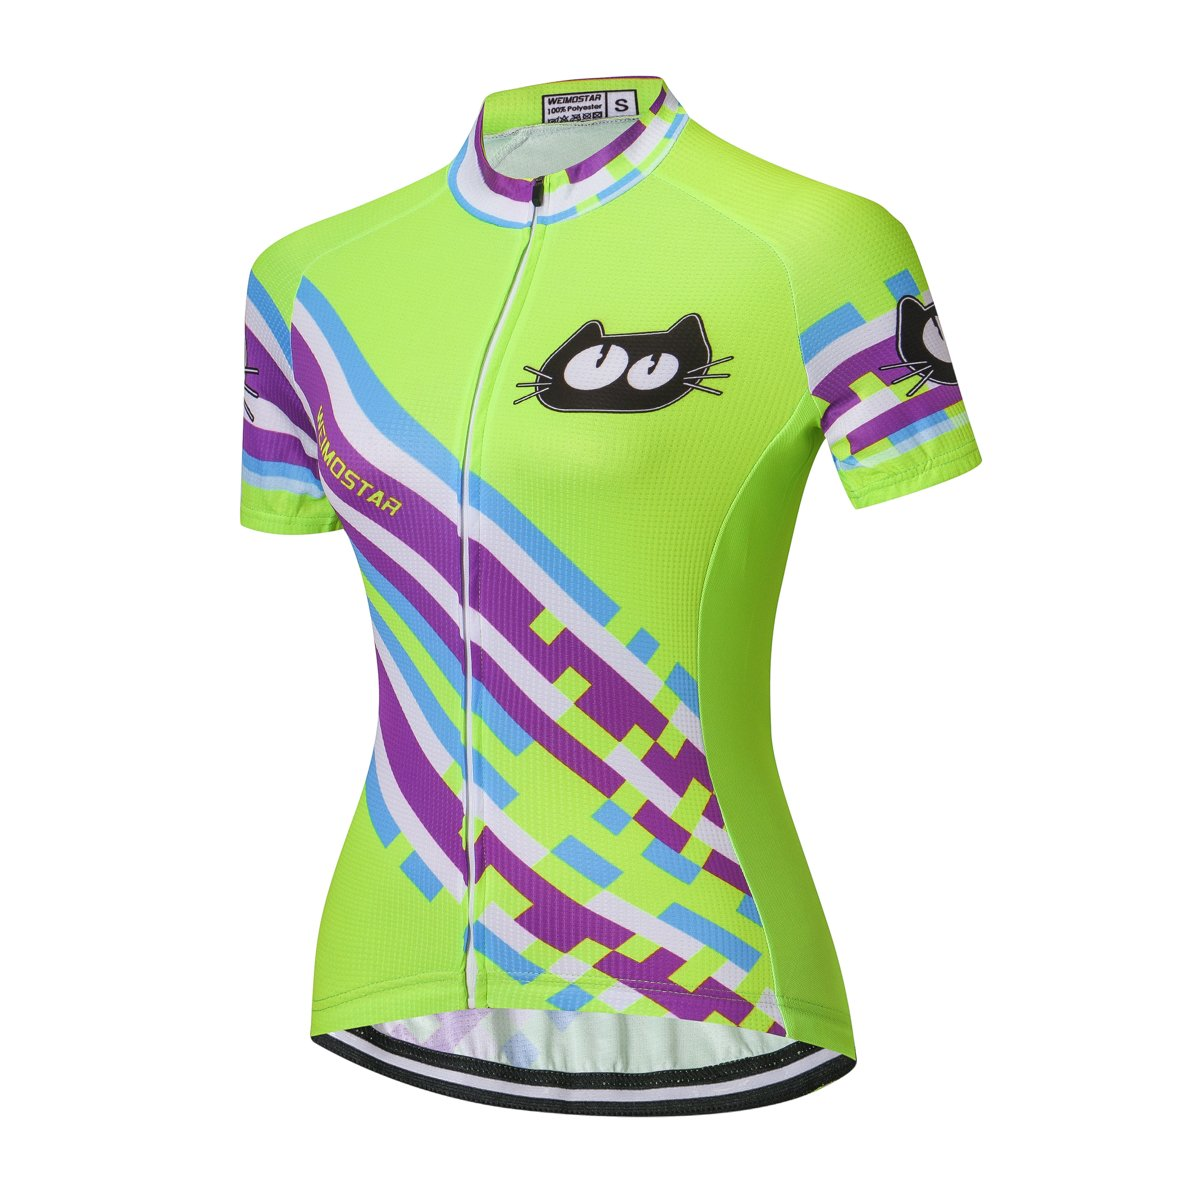 weimostar Outdoor Cycling Jersey Women Clothing Sports Blouse Short Sleeve Bike T-shirts Top Outdoor Riding Jersey bicycle Jacket